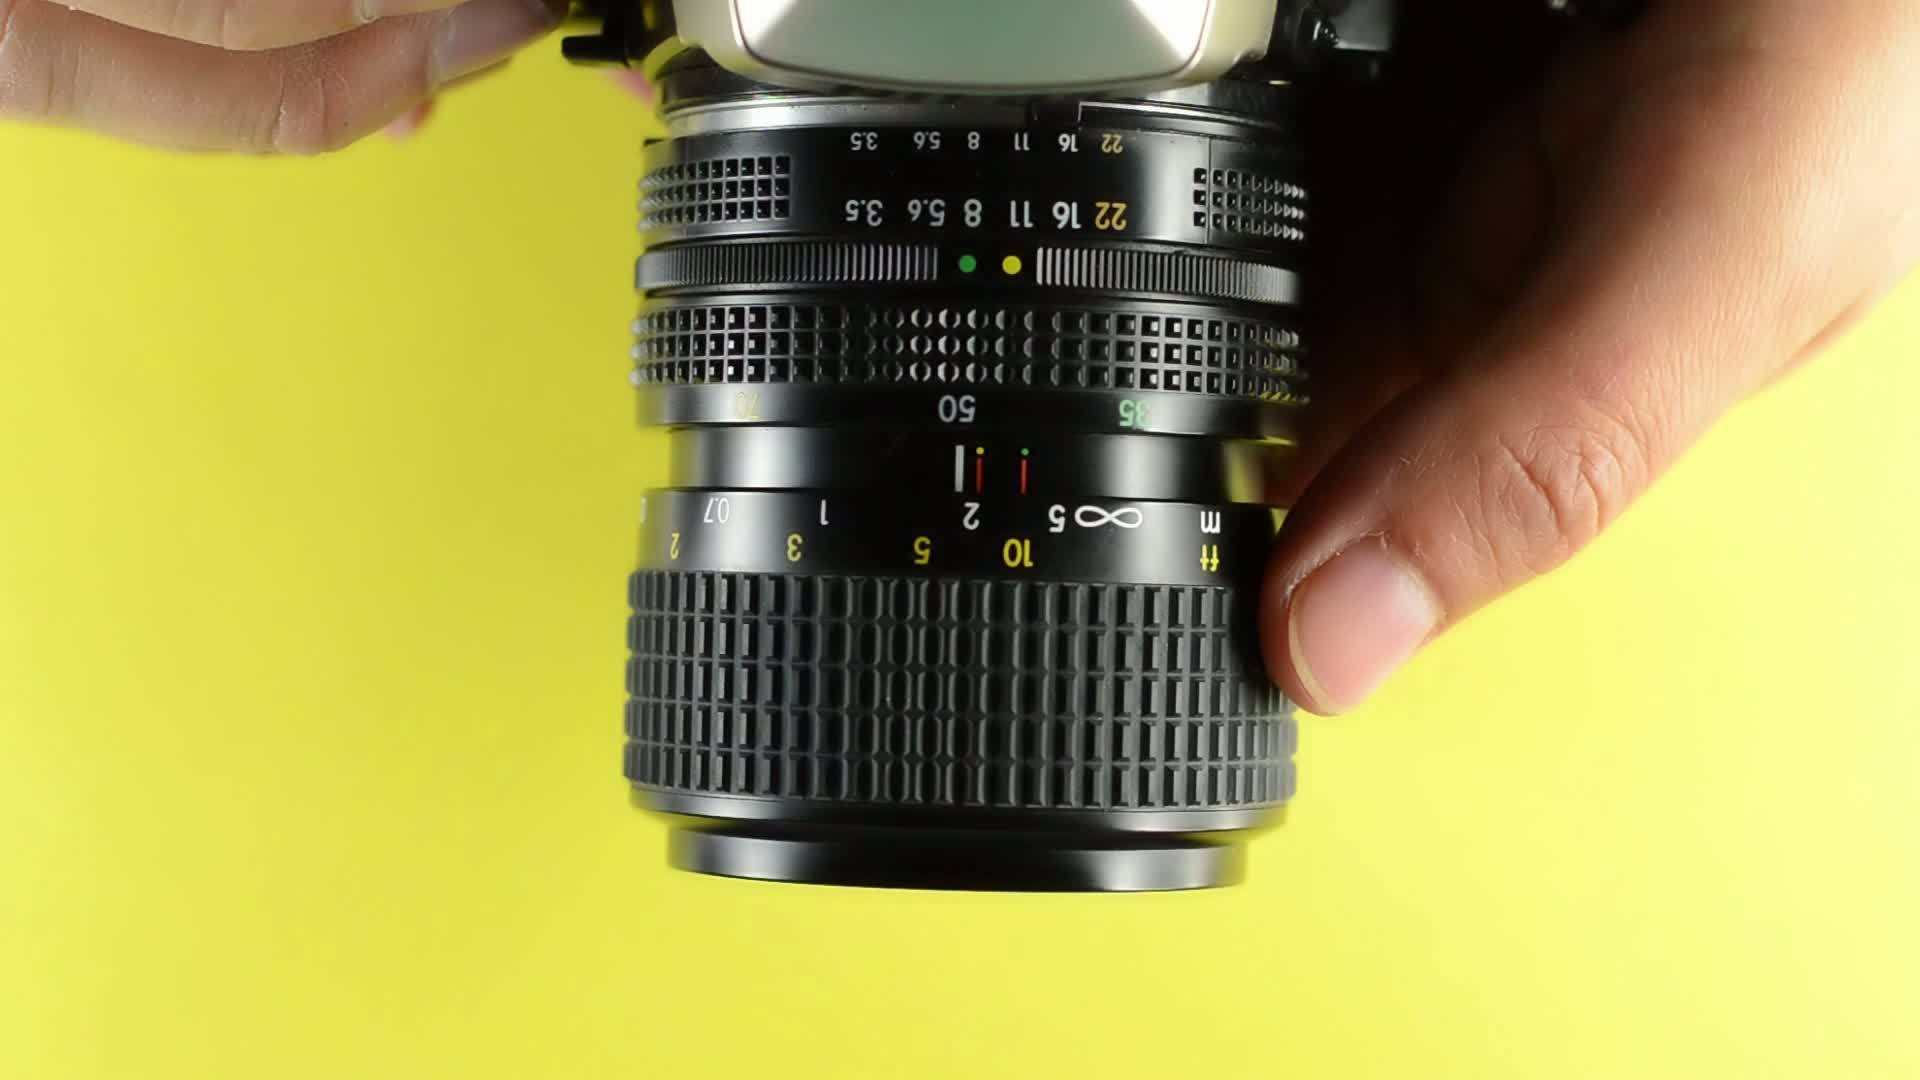 Camera Lens Focus Free Hd Video Clips Stock Footage At And Circuit Board Digital Photography Concept Videezy